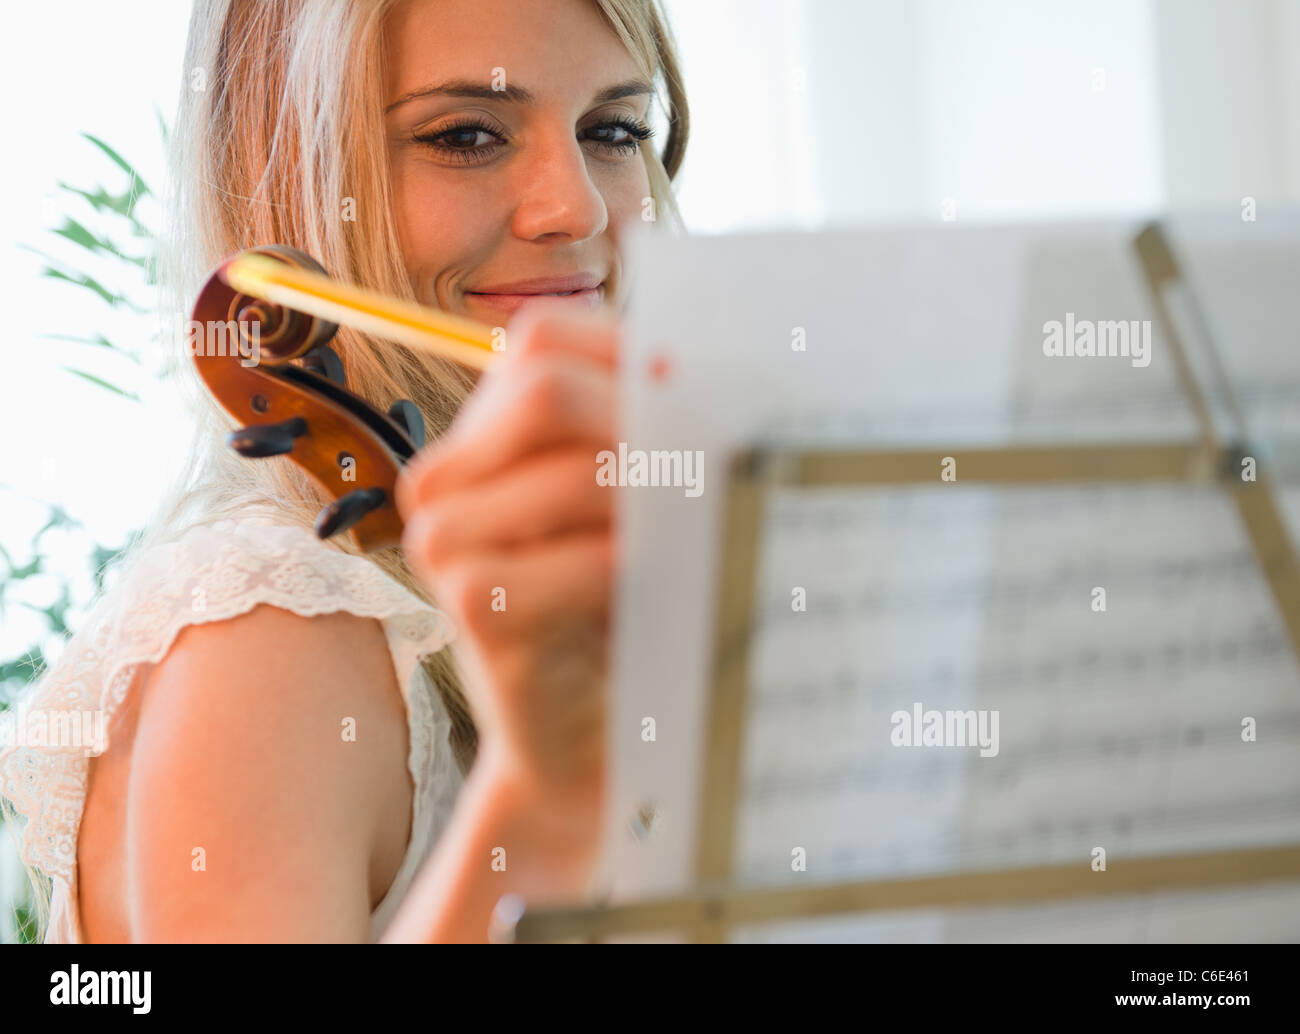 USA, New Jersey, Jersey City, Woman composing music - Stock Image